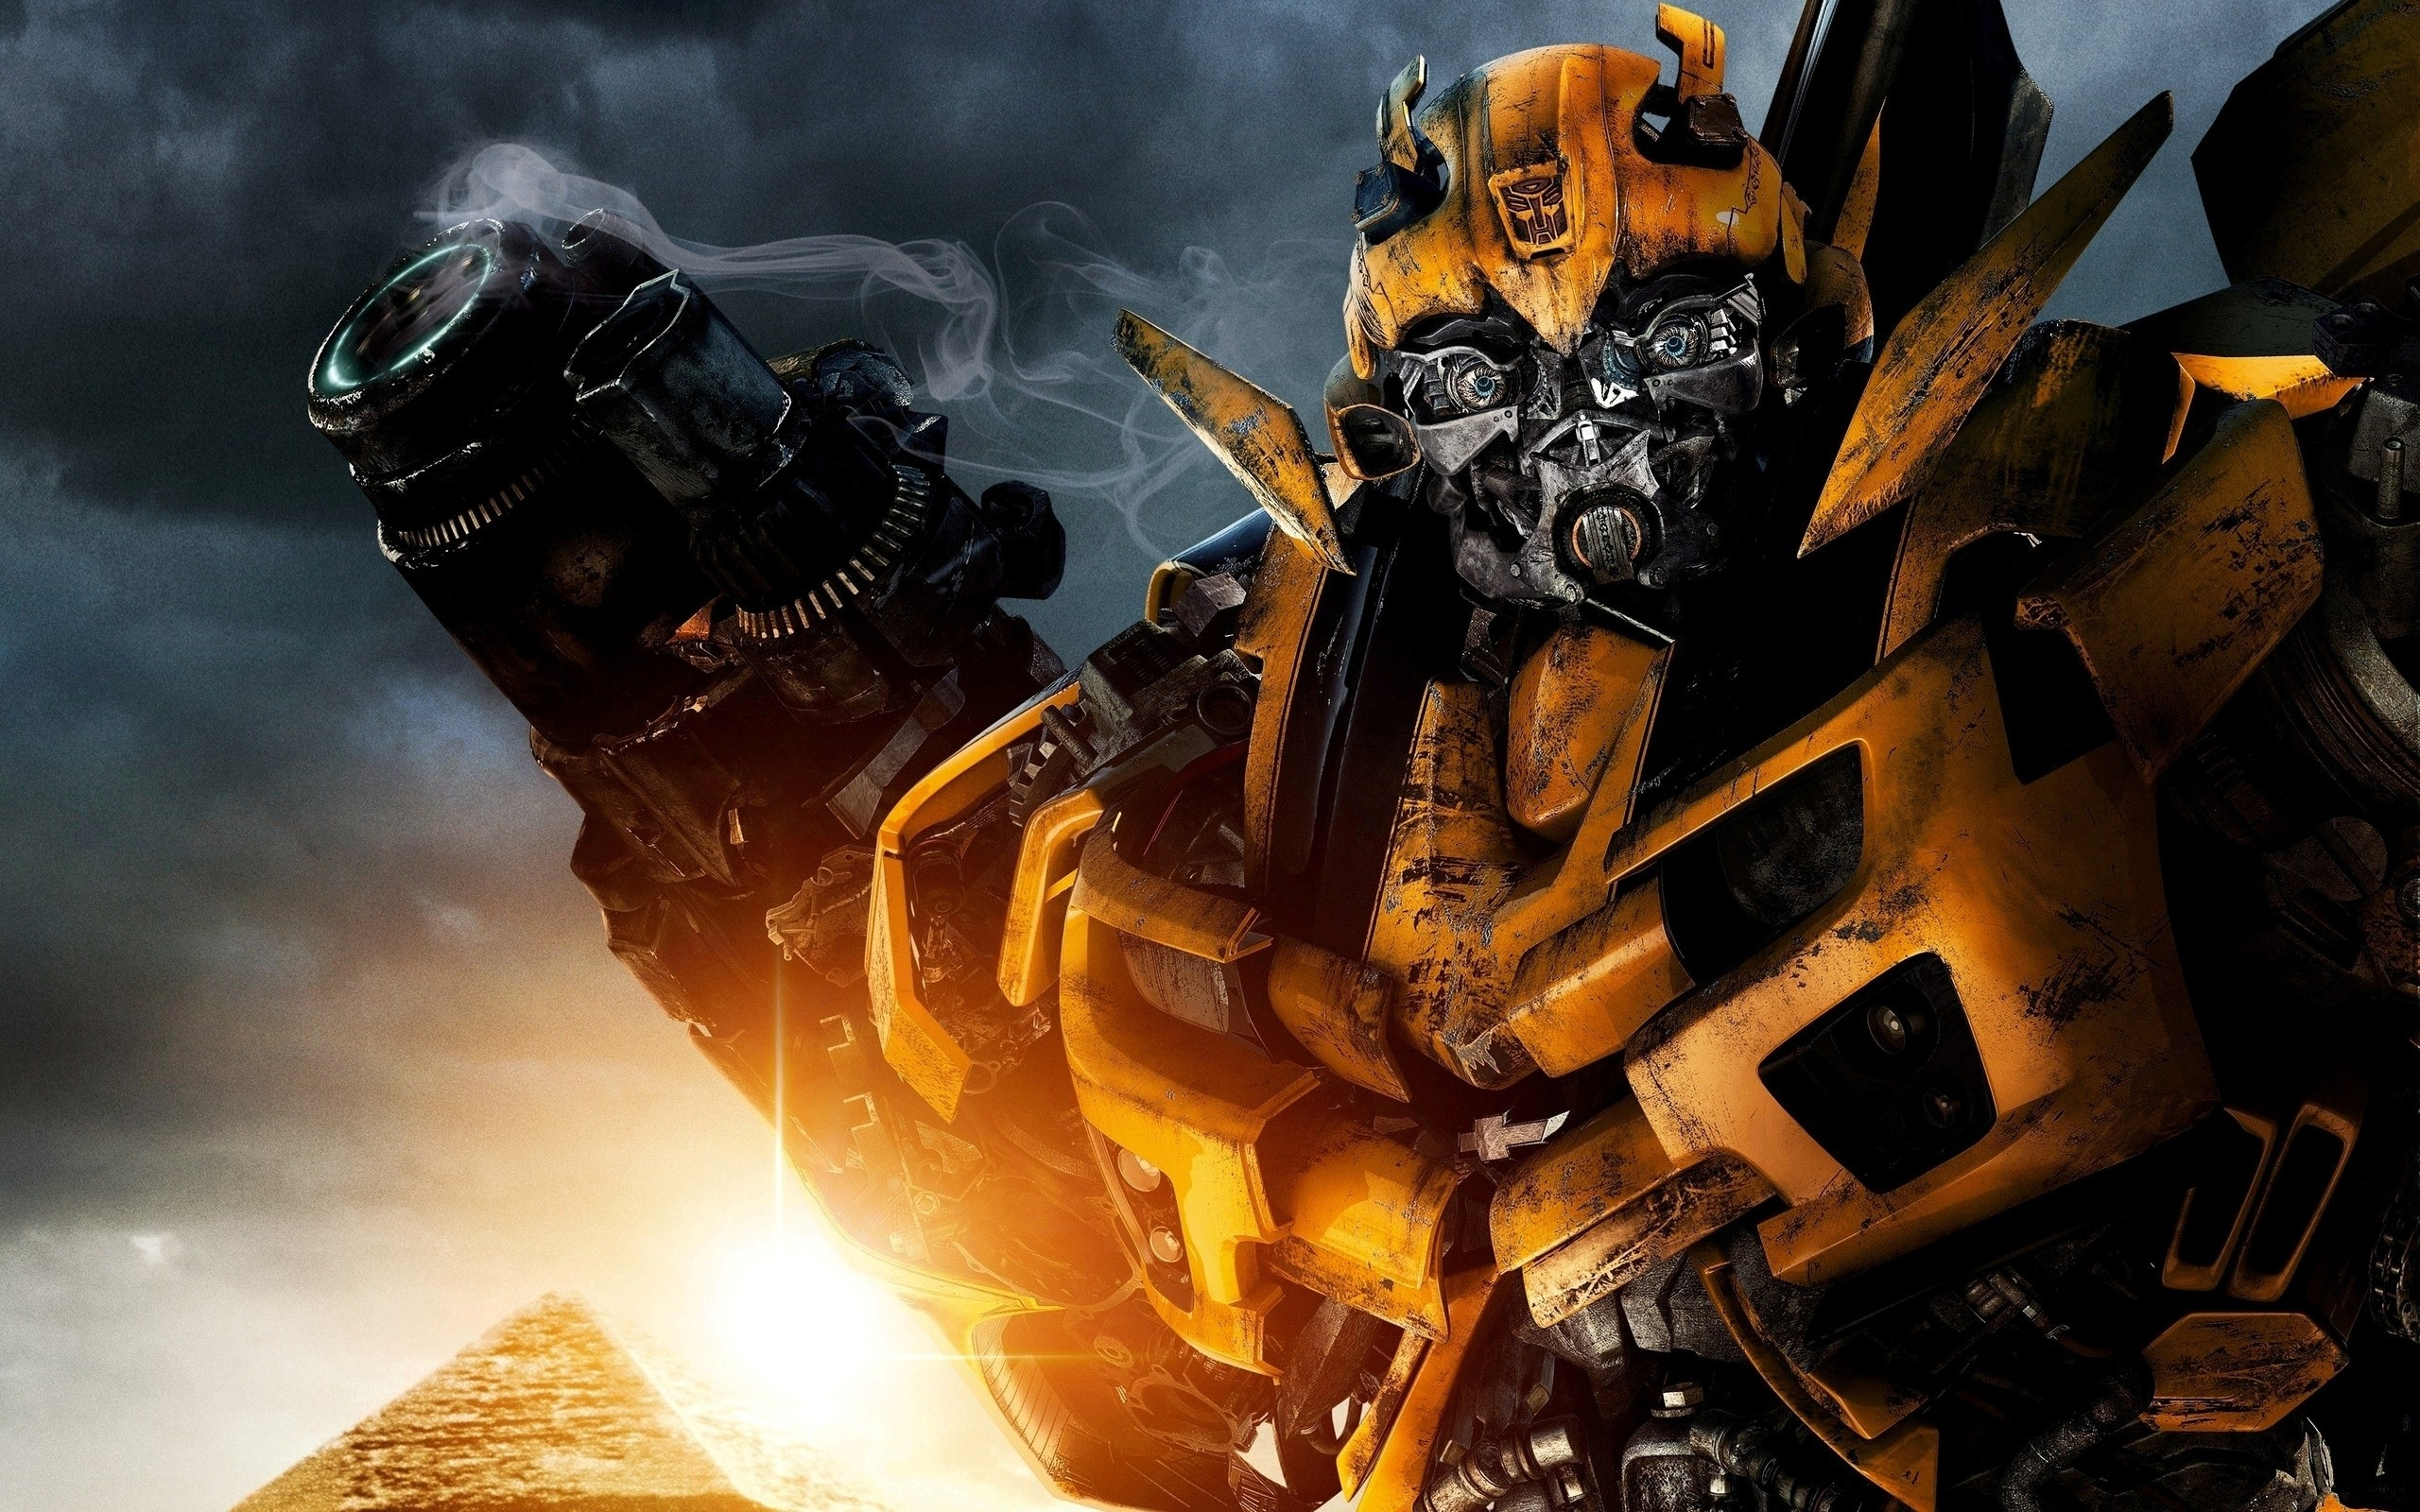 HD Transformers Wallpapers Backgrounds For Download 2560x1600